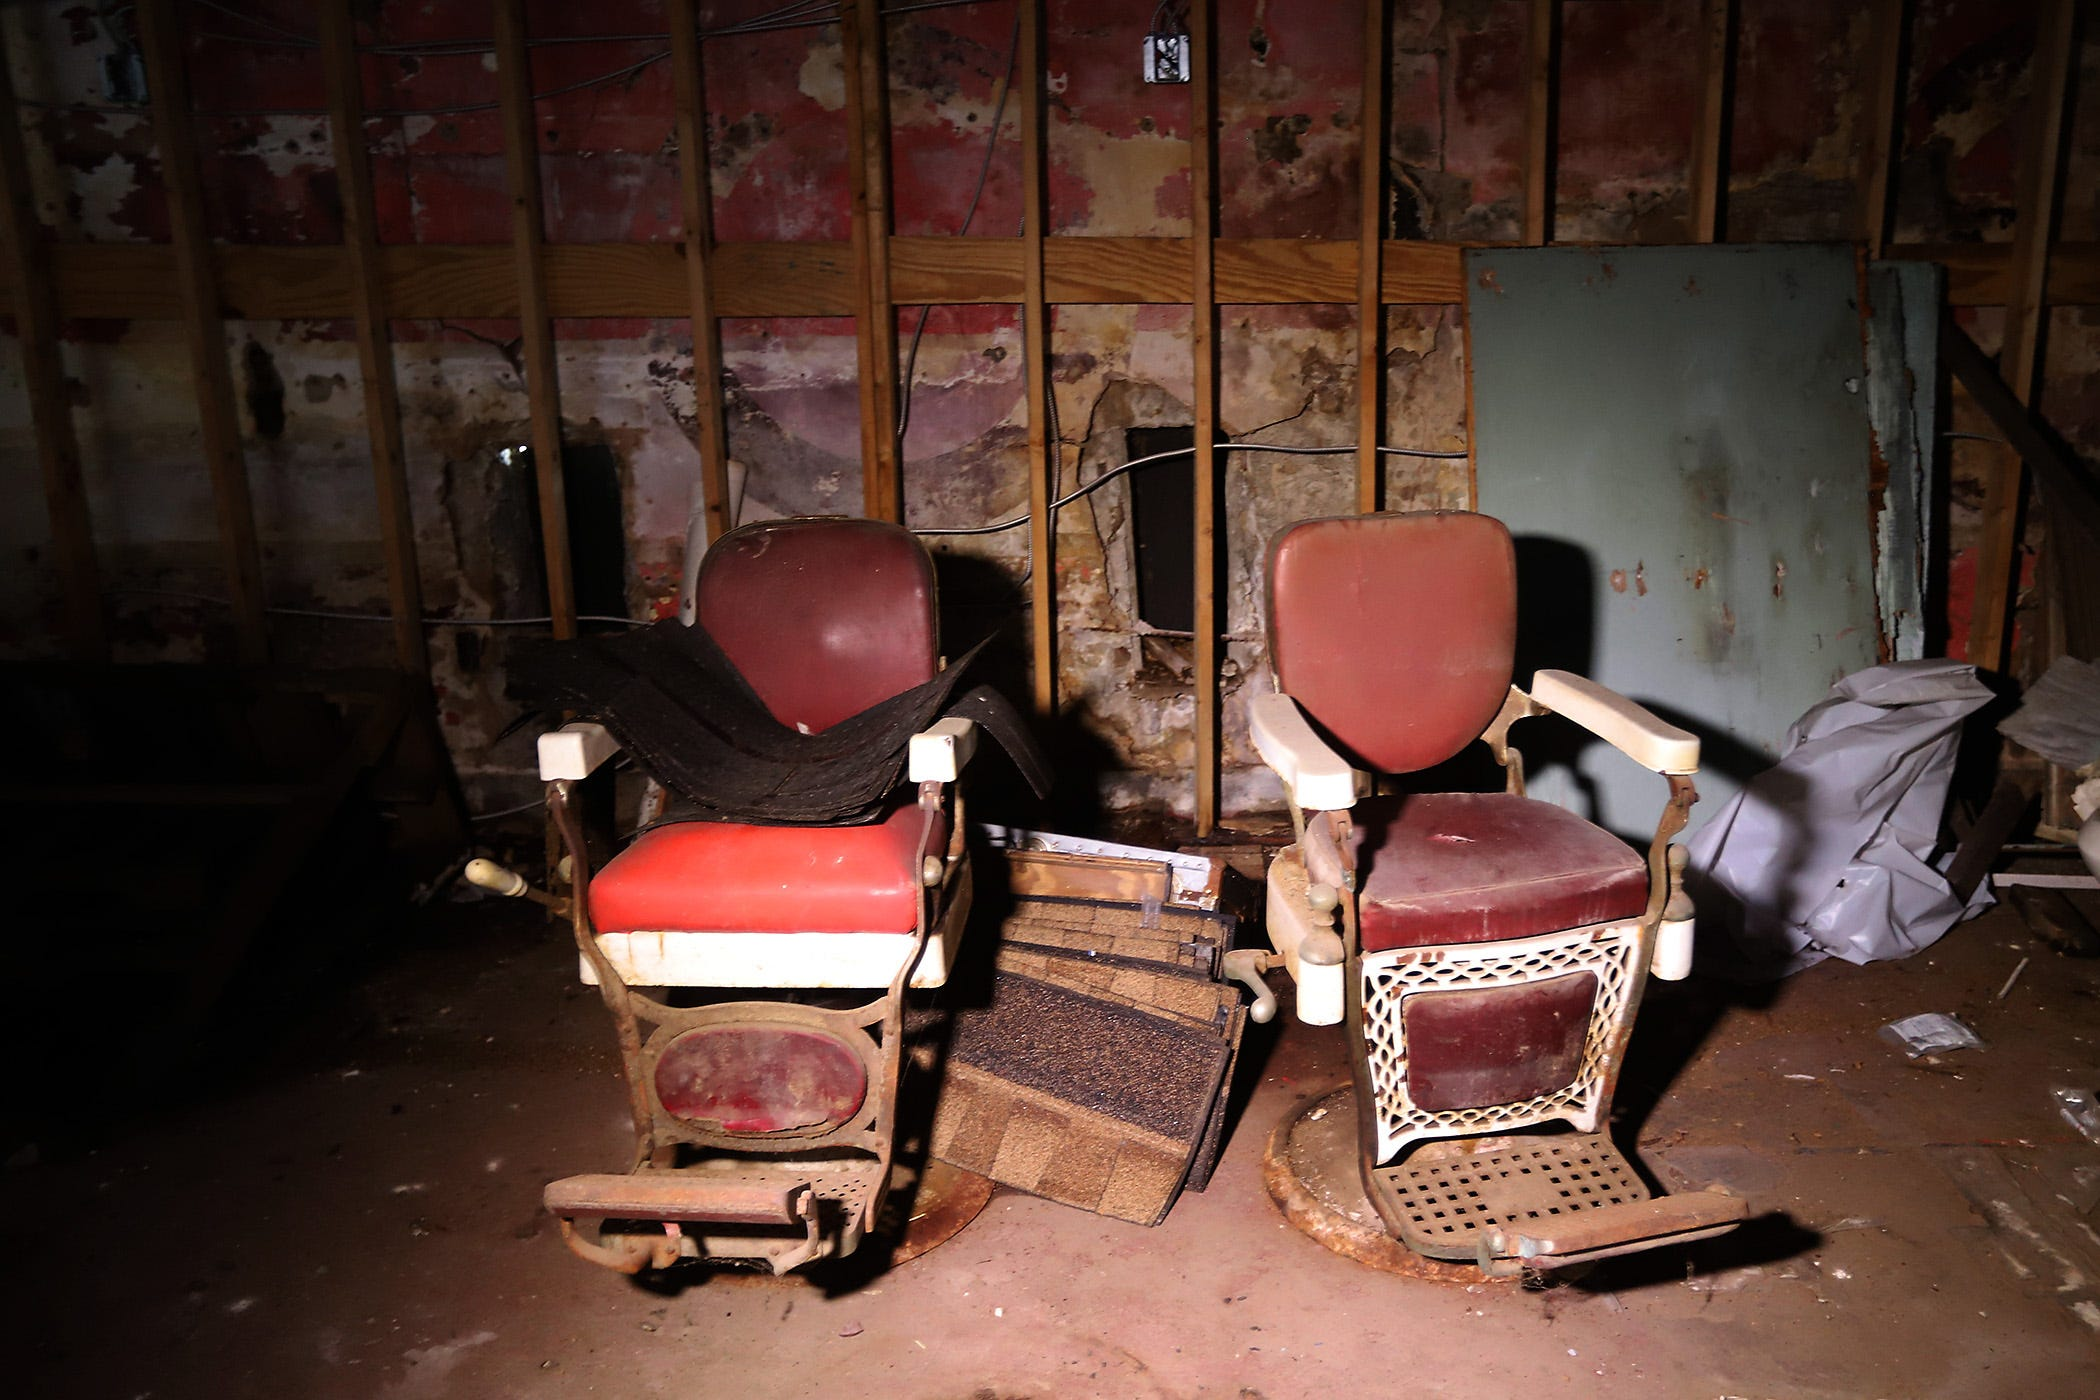 A pair of vintage barber chairs still sit on the first floor of the historic hotel and nightclub The Dew Drop Inn in New Orleans. Founder and owner Frank Painia began as a barber and continued to cut hair at the Dew Drop until he died in 1972.